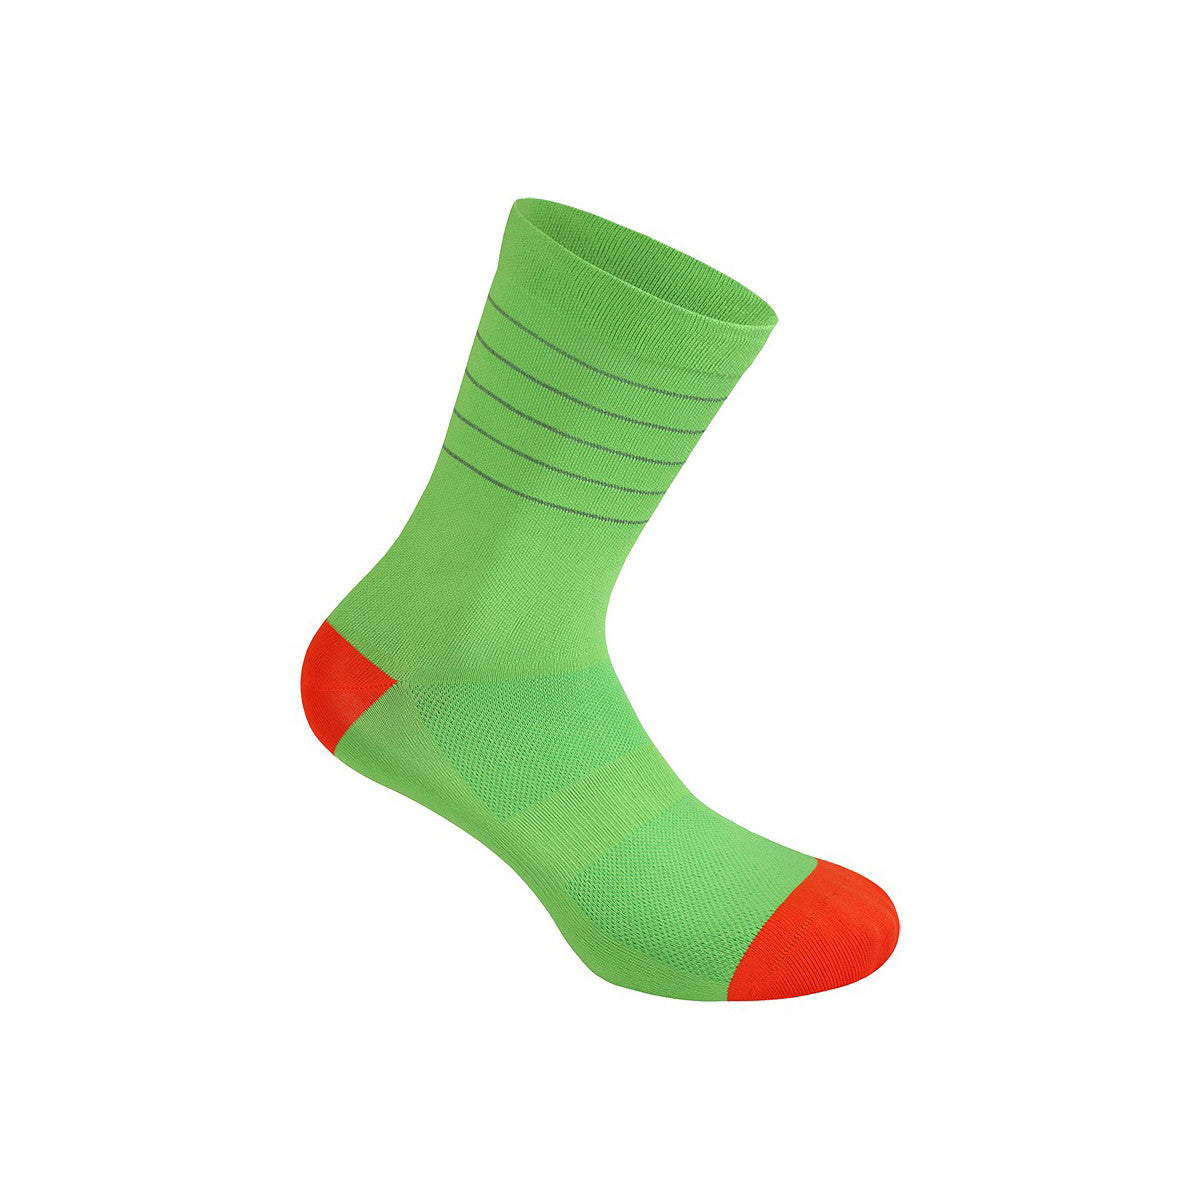 Reflective Glitter Socks - Green Flash / Fiesta